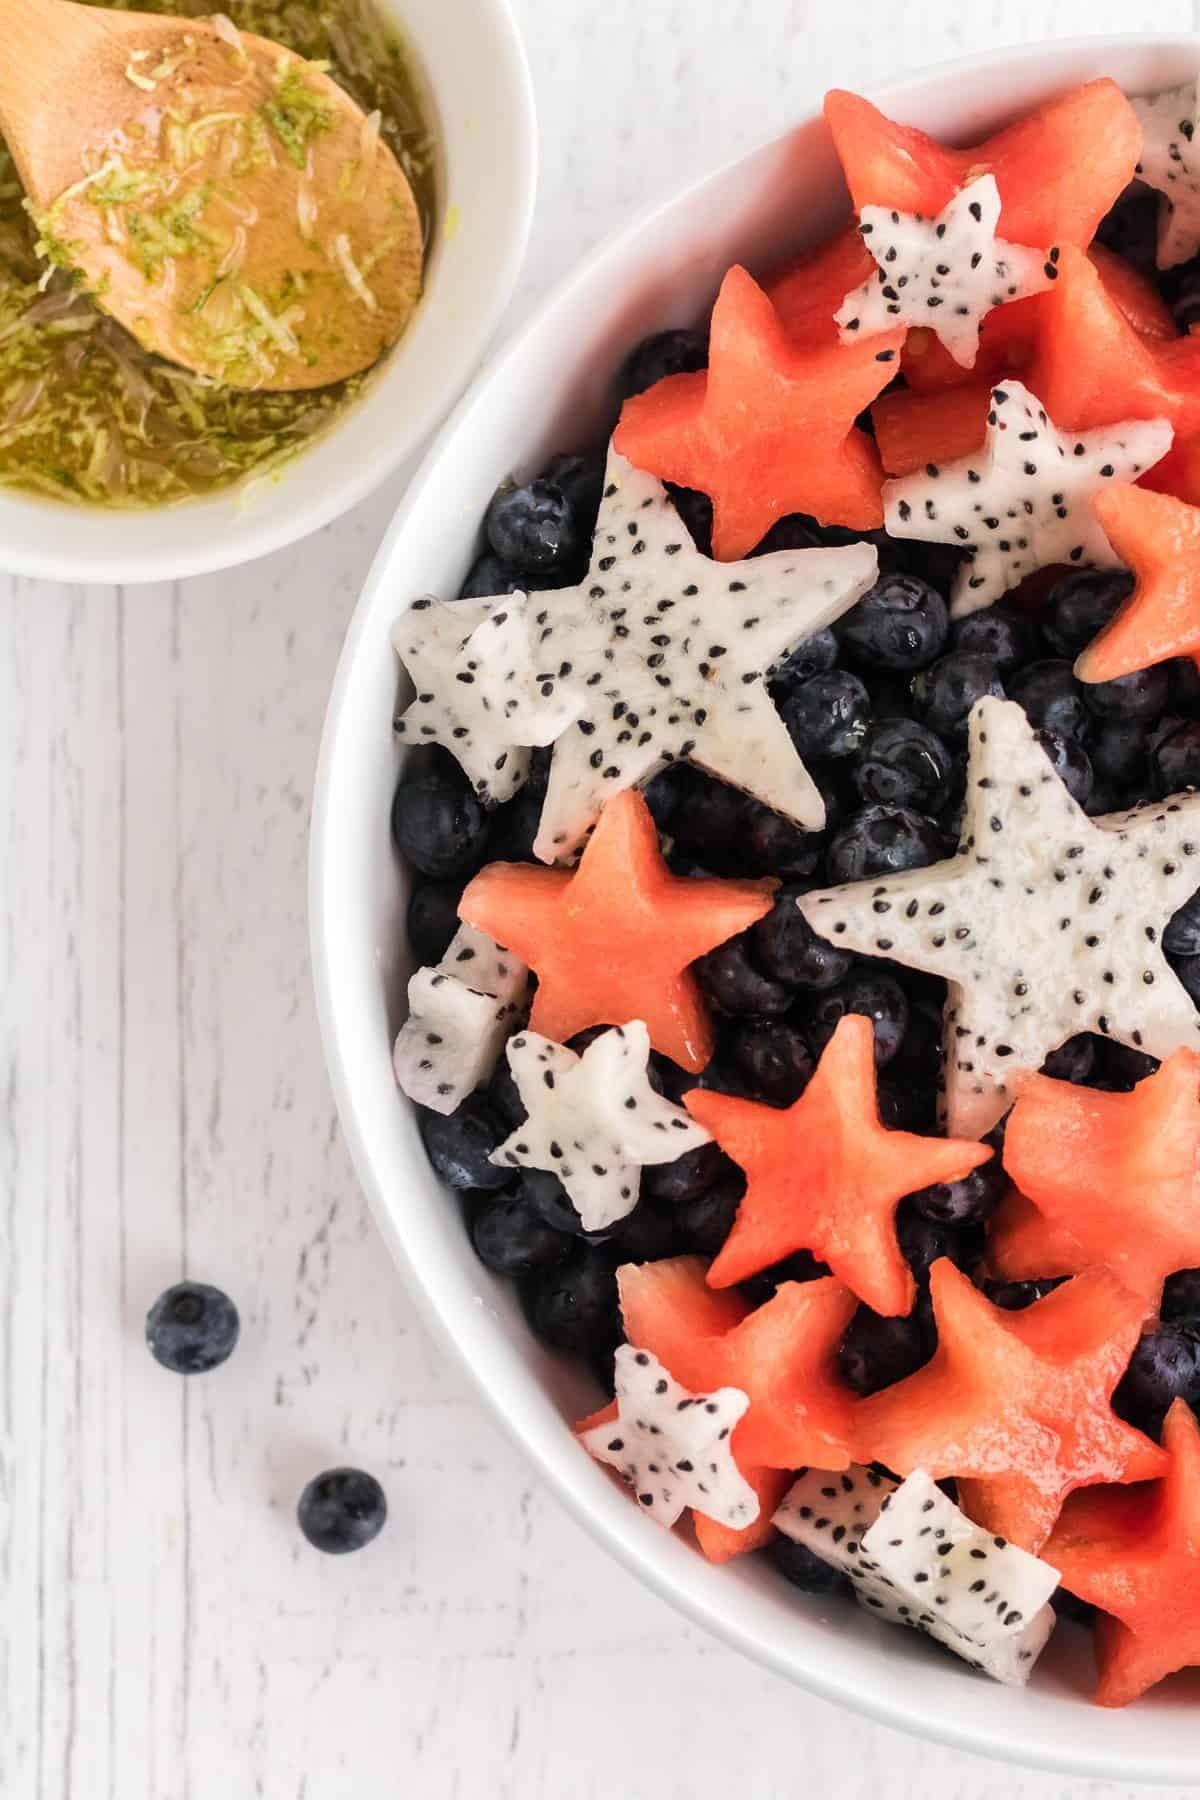 Close up view of fruit salad with watermelon and dragon fruit cut into star shapes.